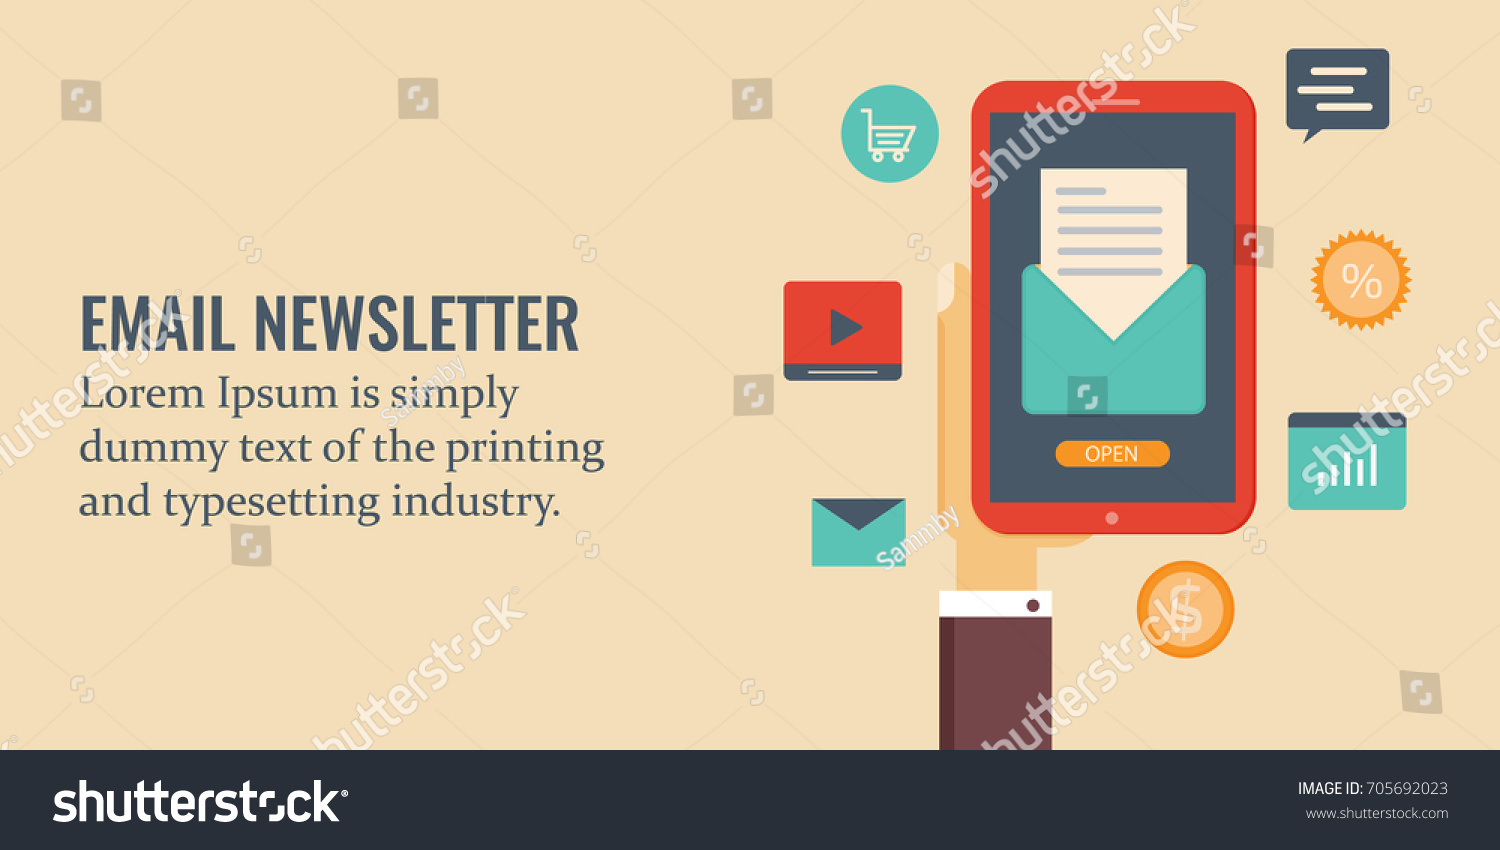 Email Newsletter On Mobile Screen Newsletter Stock Vector ...